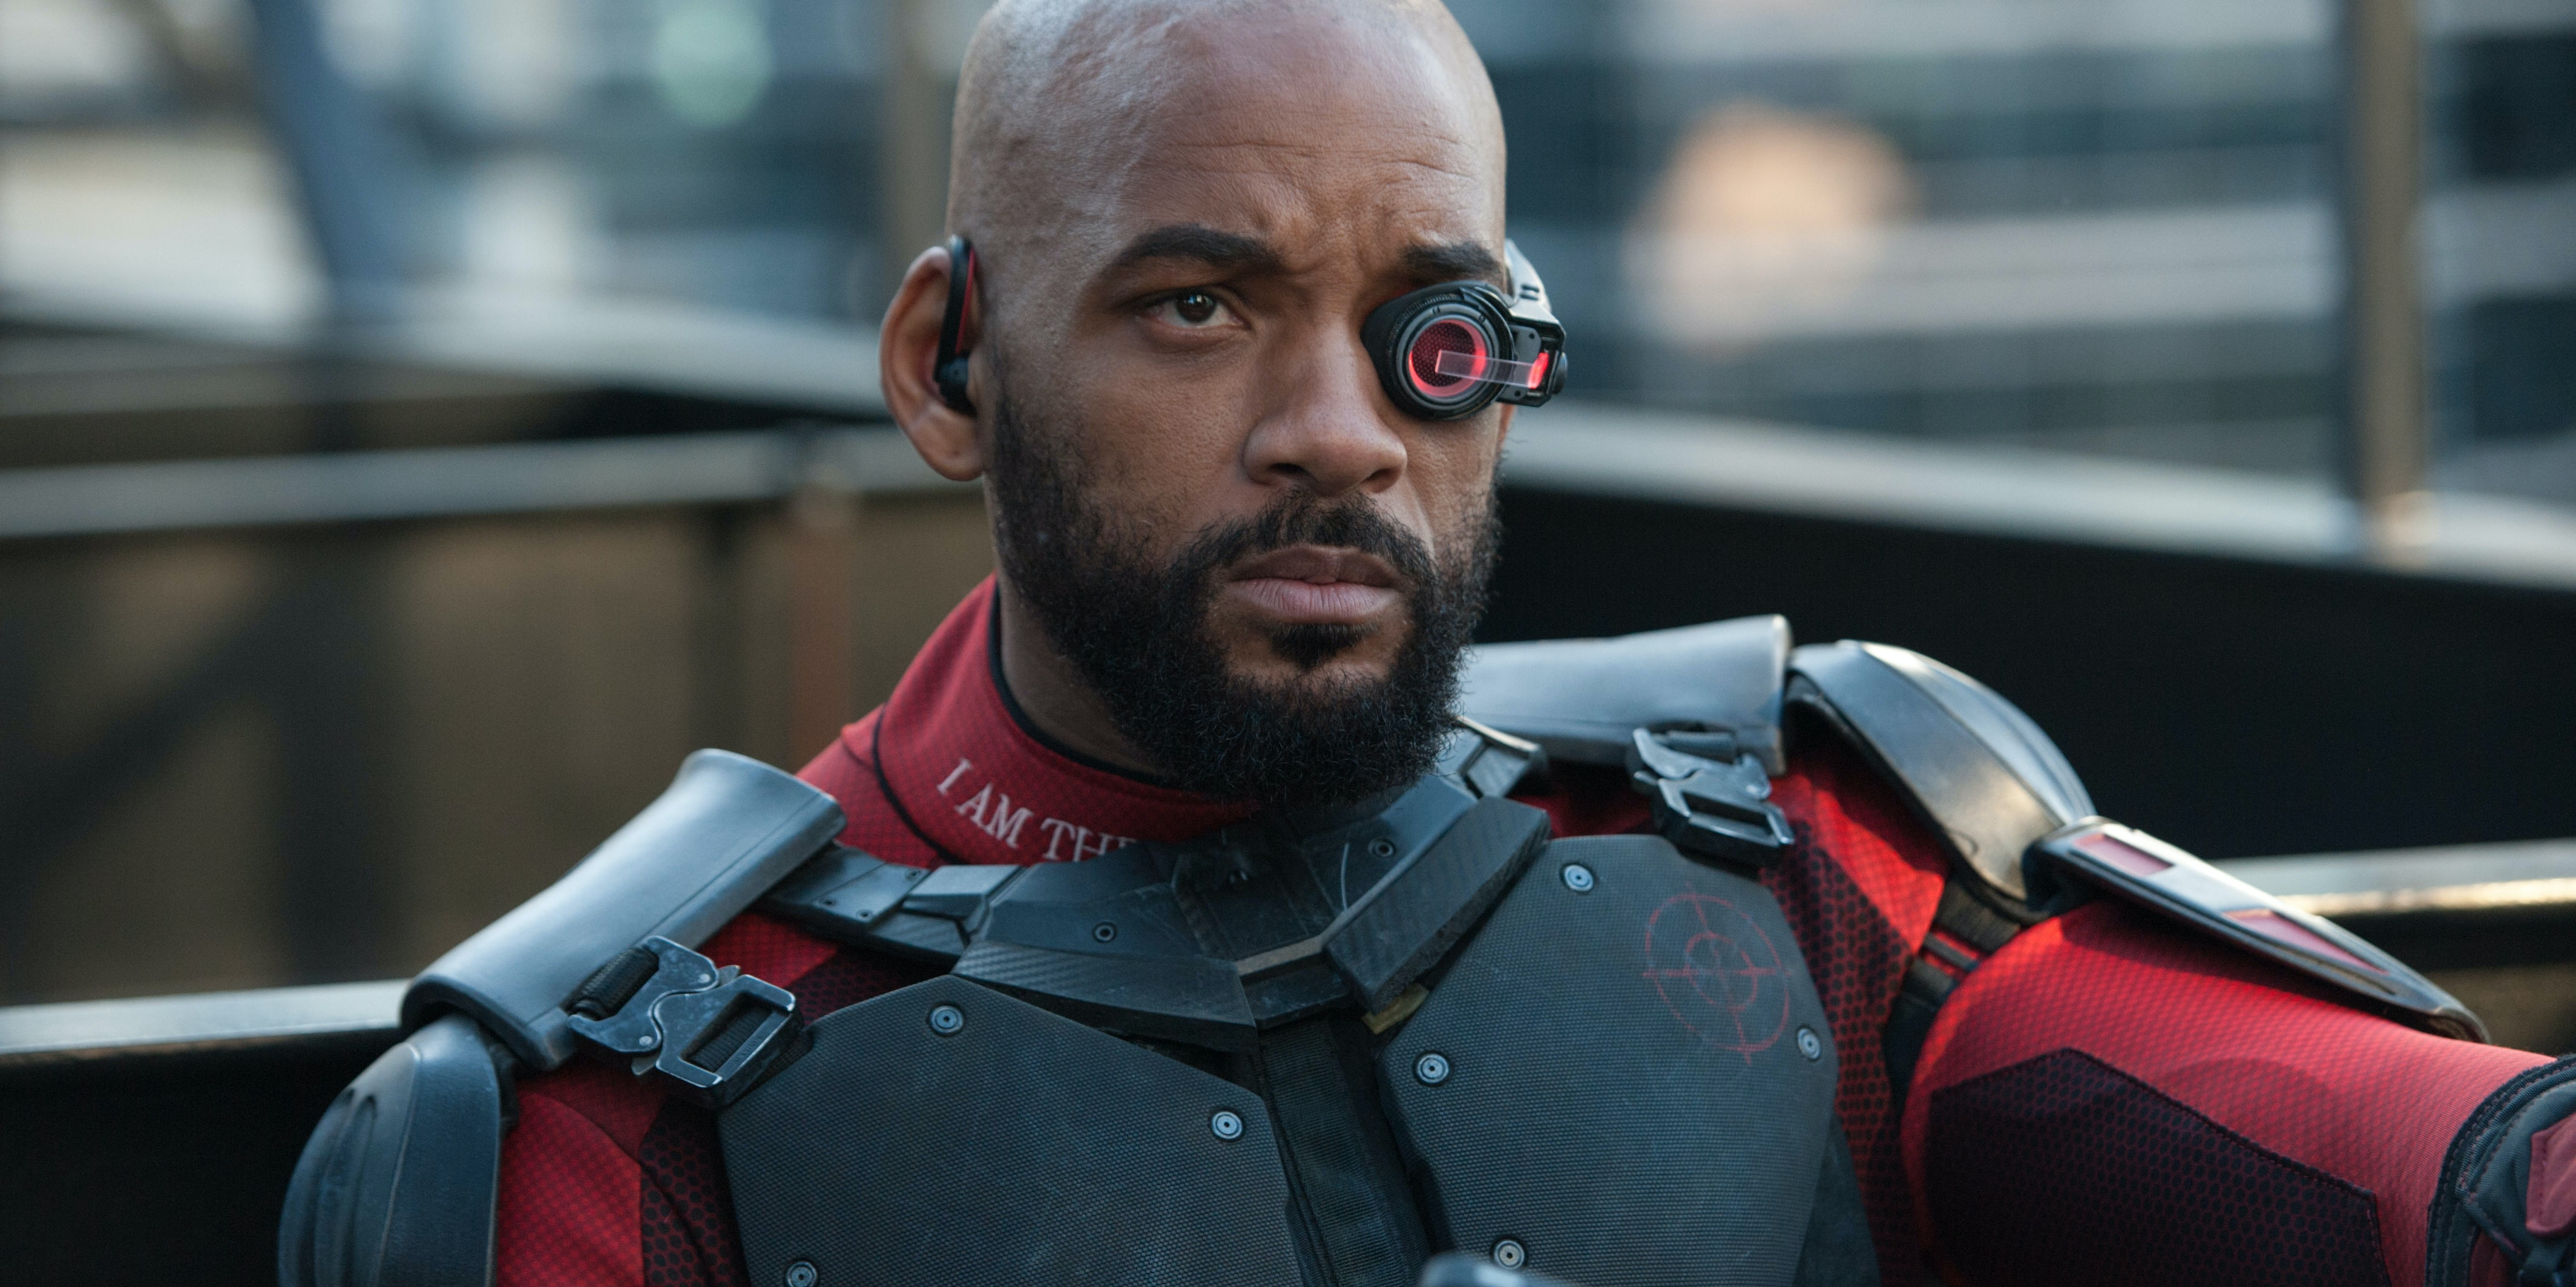 Where Does 'Suicide Squad' Fit in the DC Cinematic Universe?